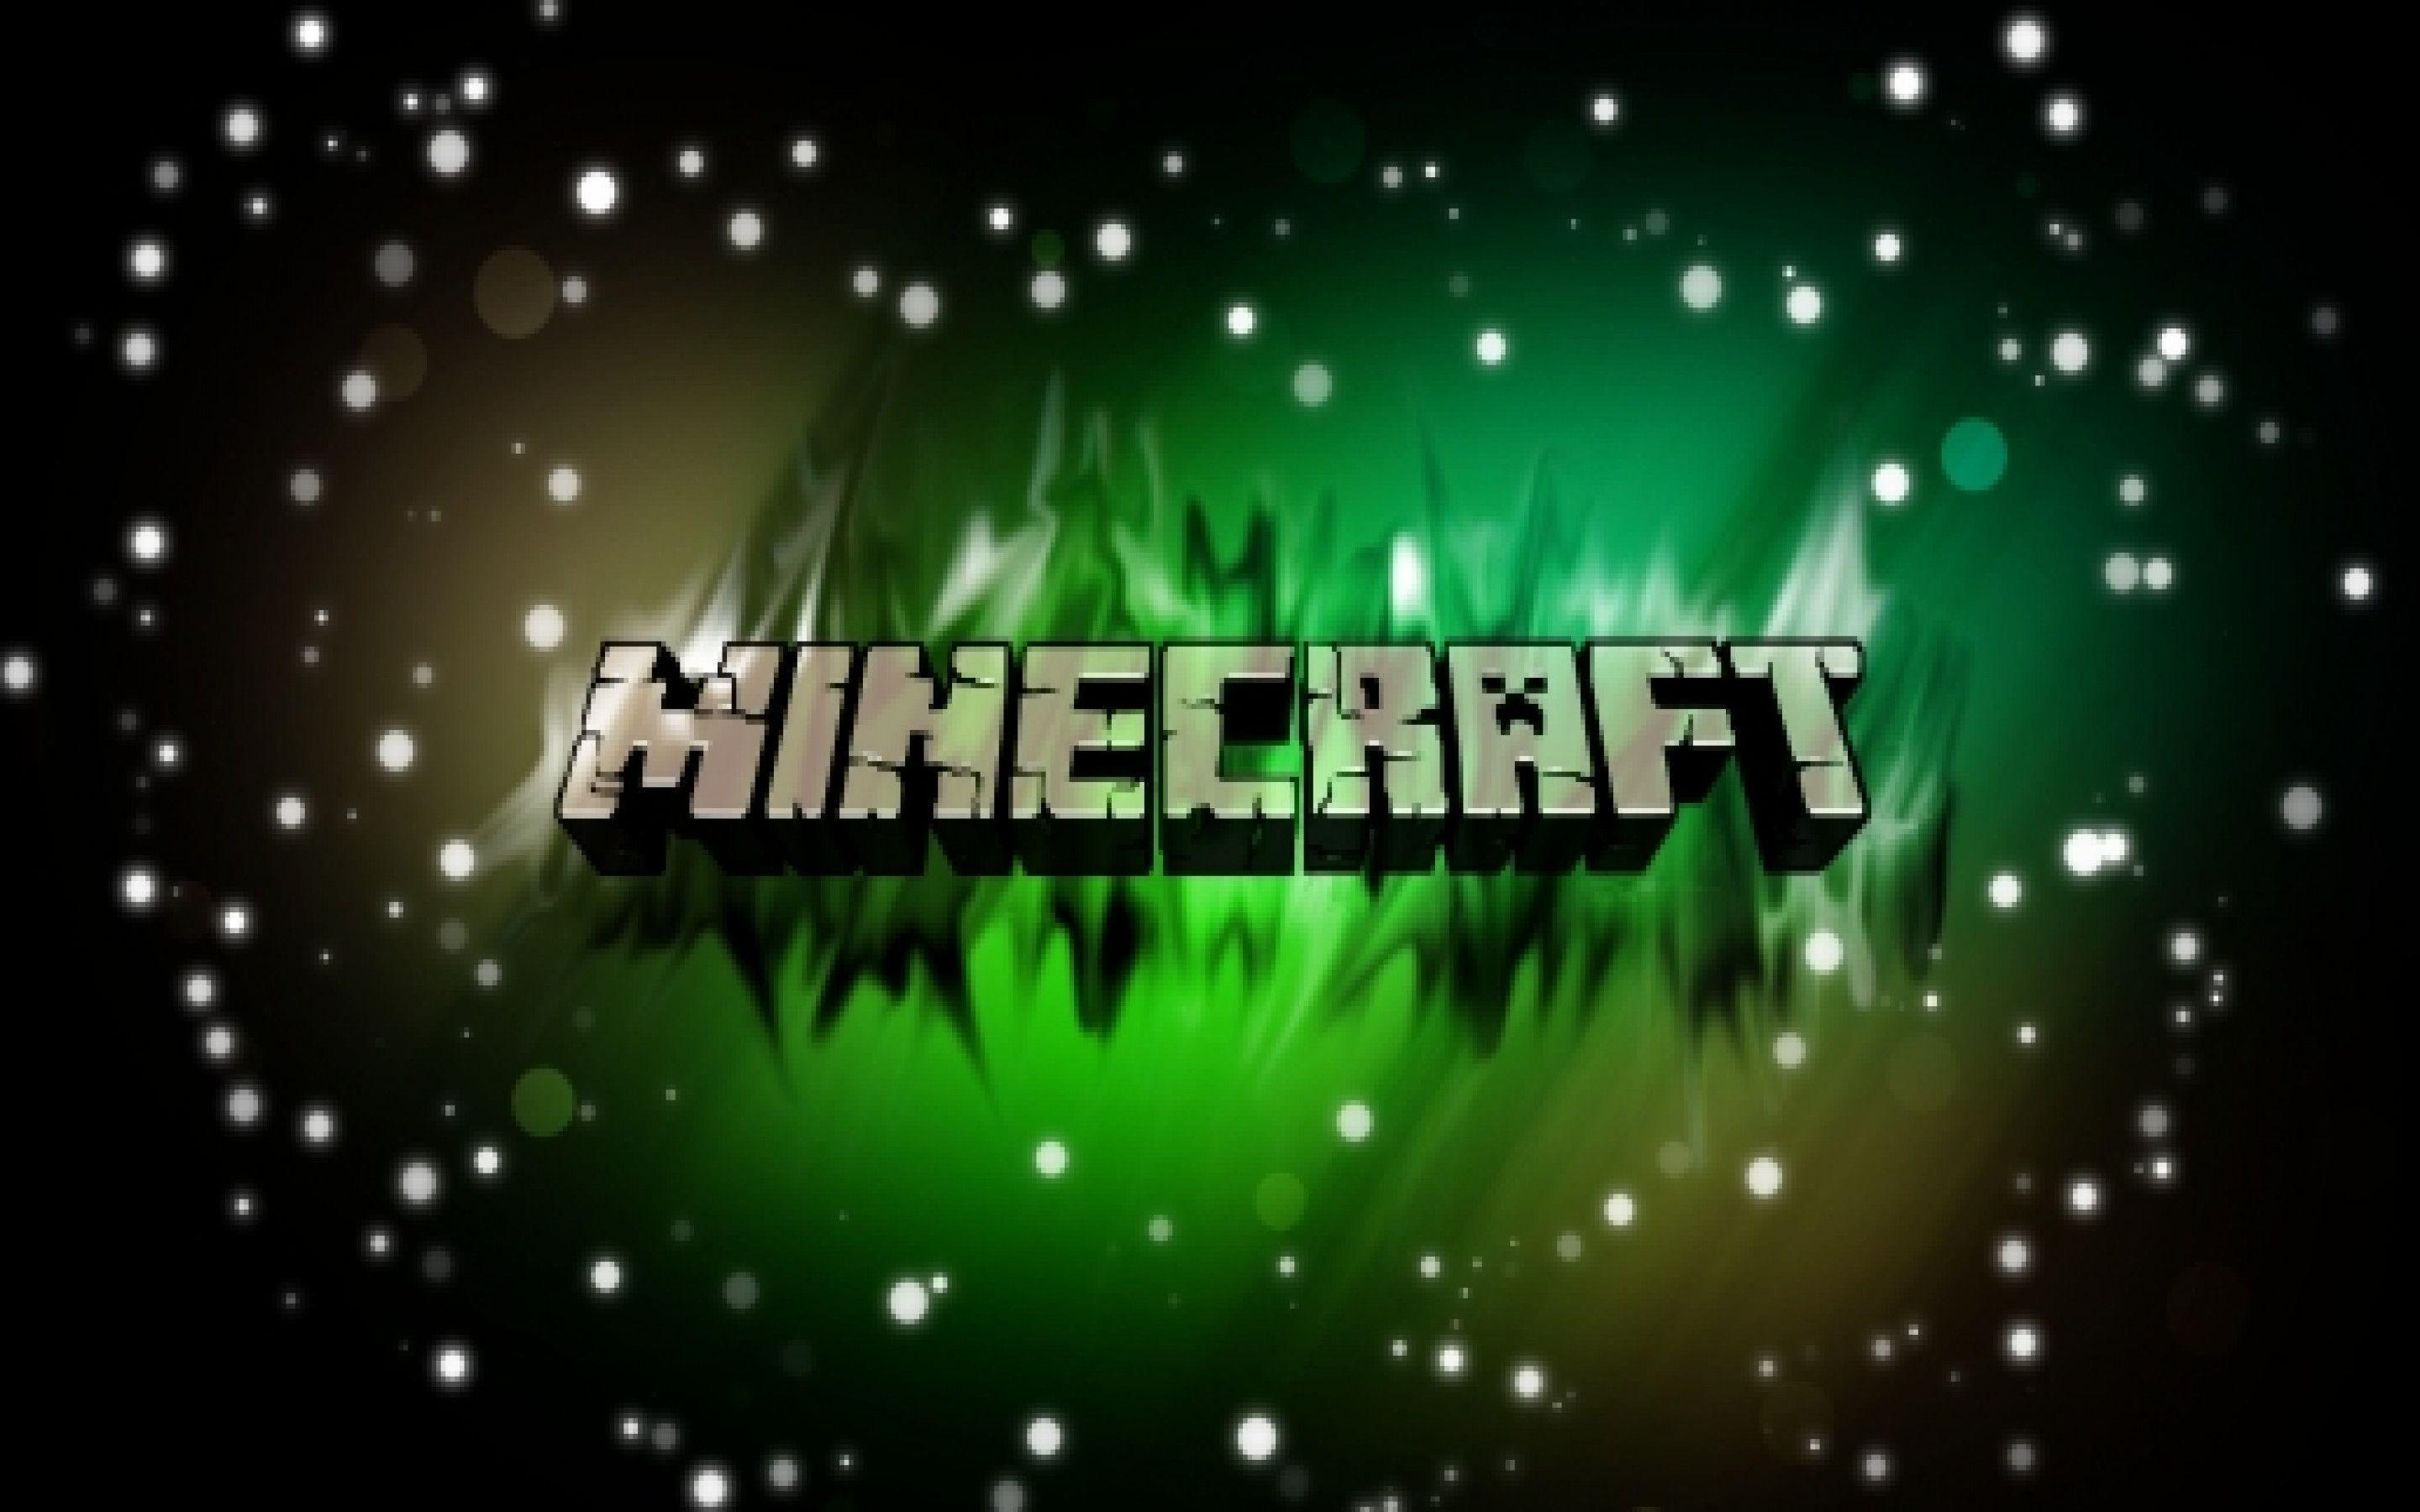 HD Wallpapers Of Minecraft - Wallpaper Cave